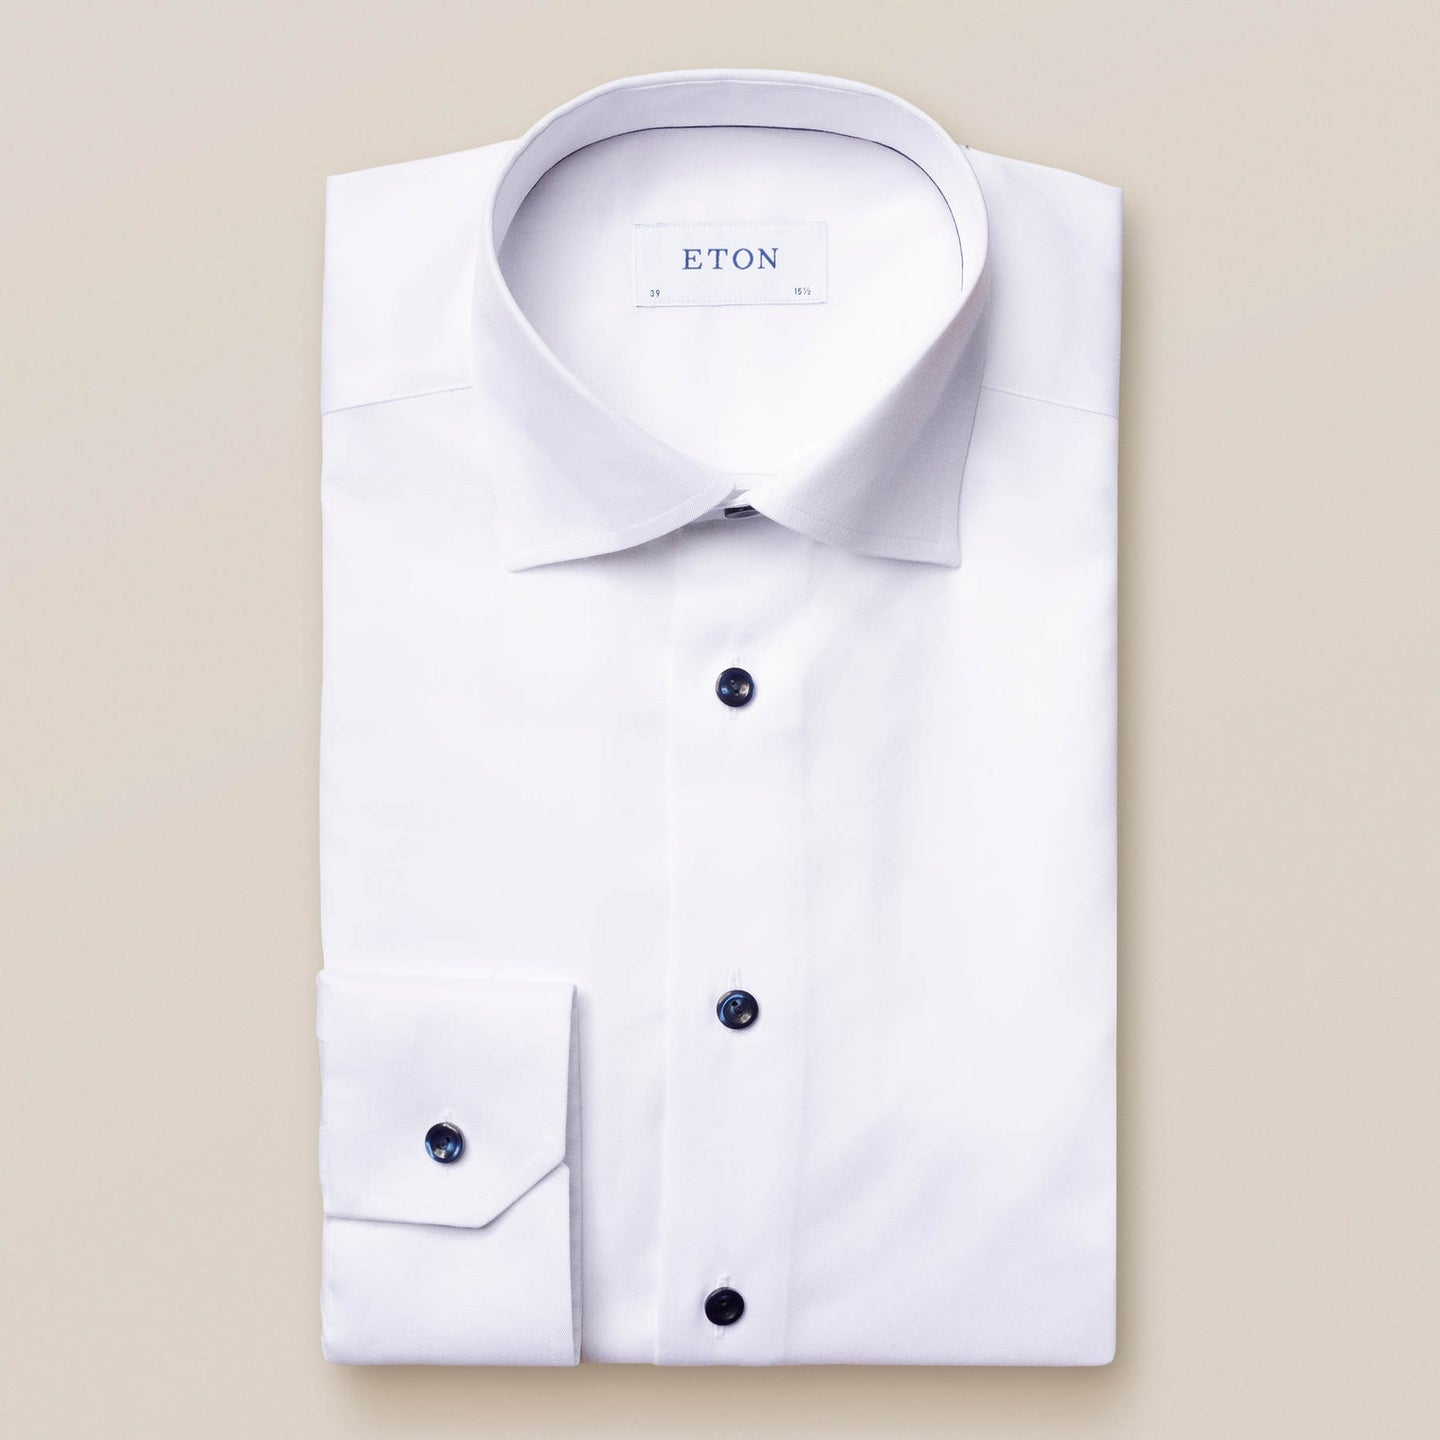 30000051800 Eton White Twill Slim Fit Mens Shirt with Navy Detailing for sale online ireland